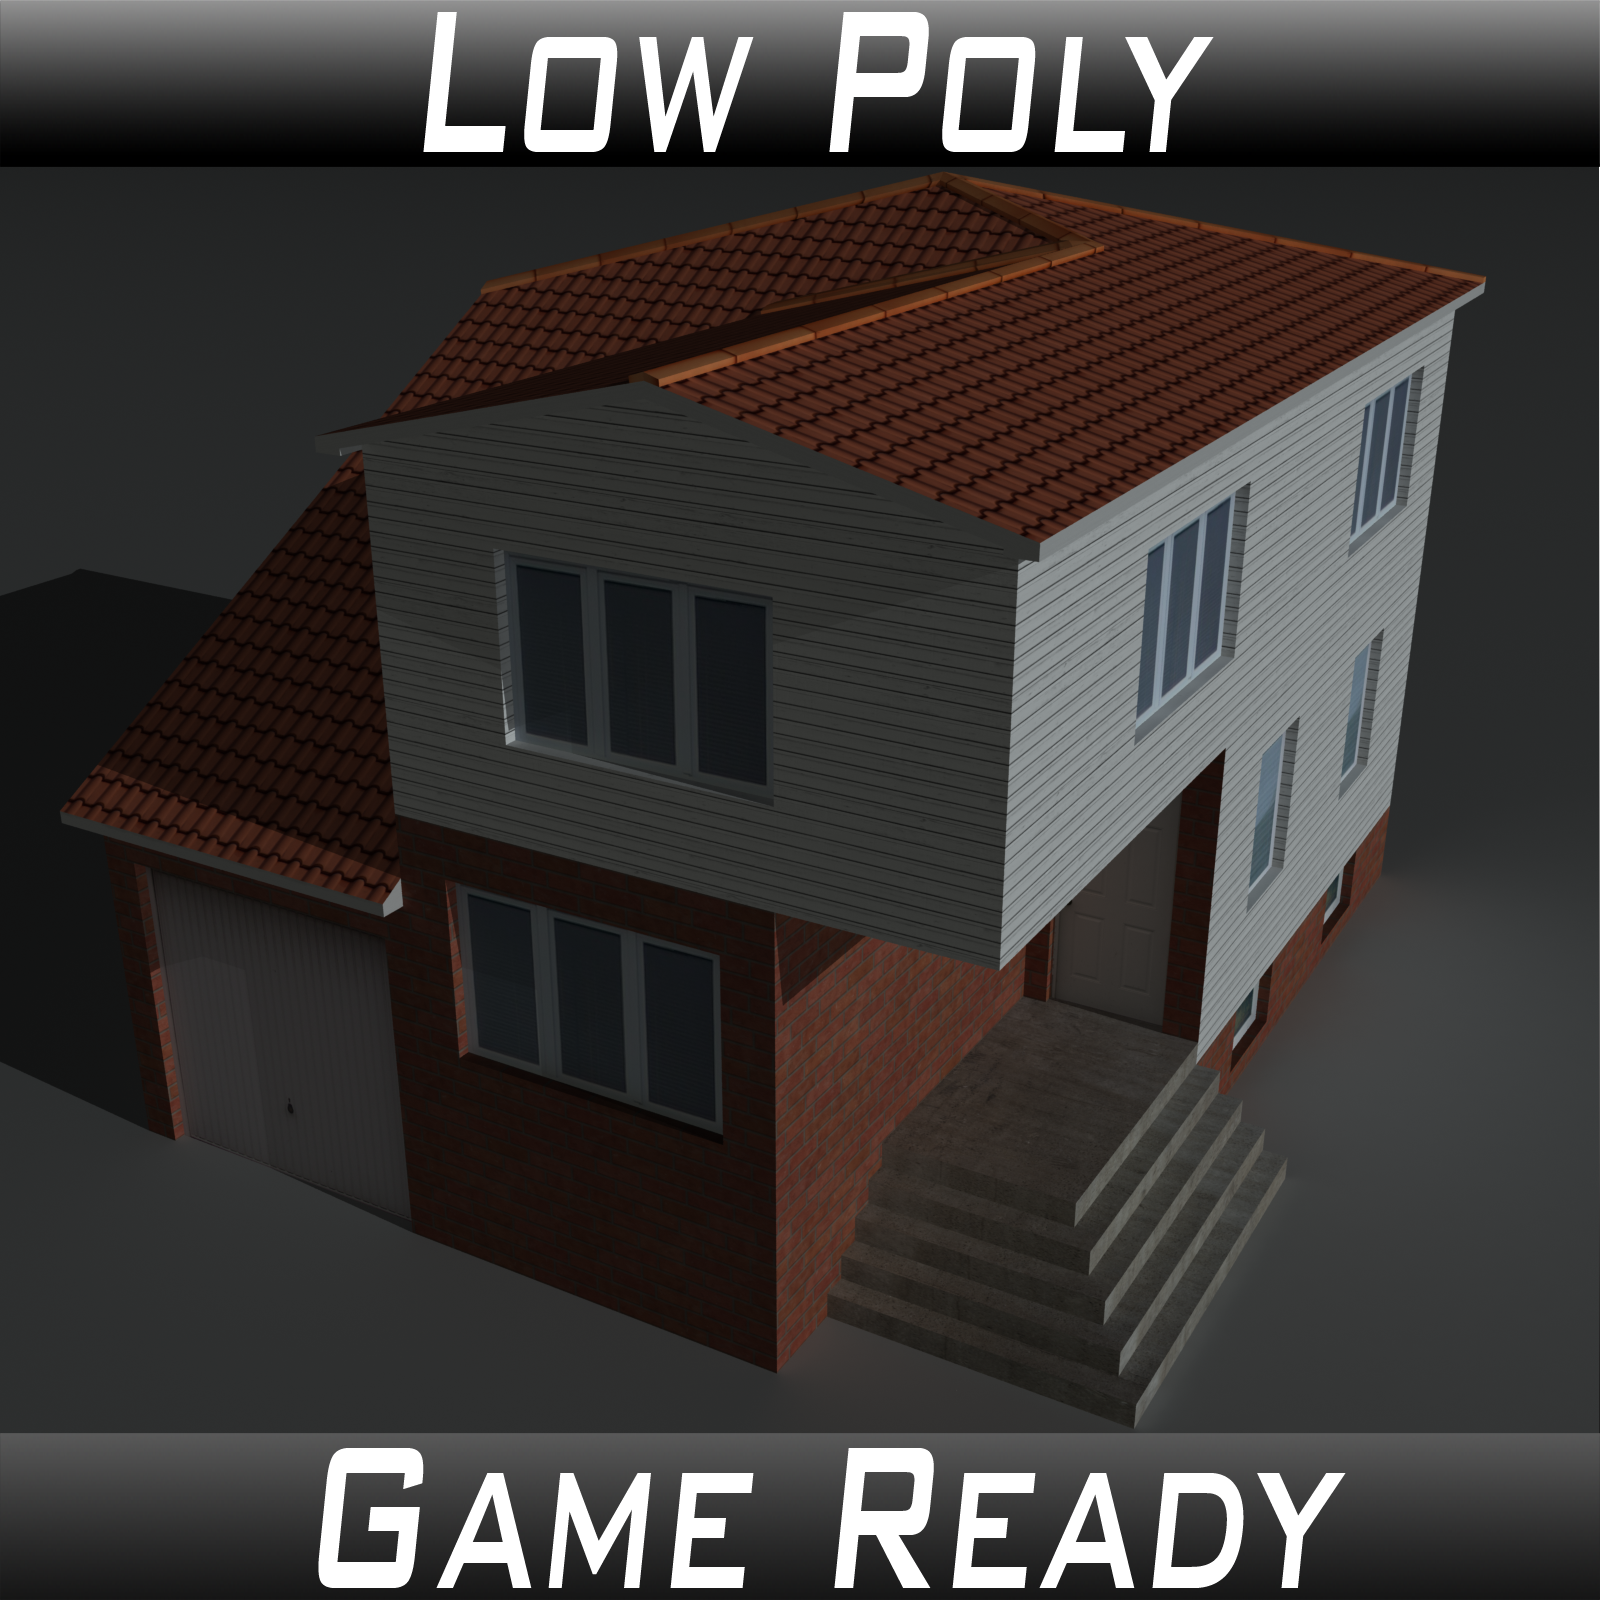 Low Poly House 5 - Extended Licence